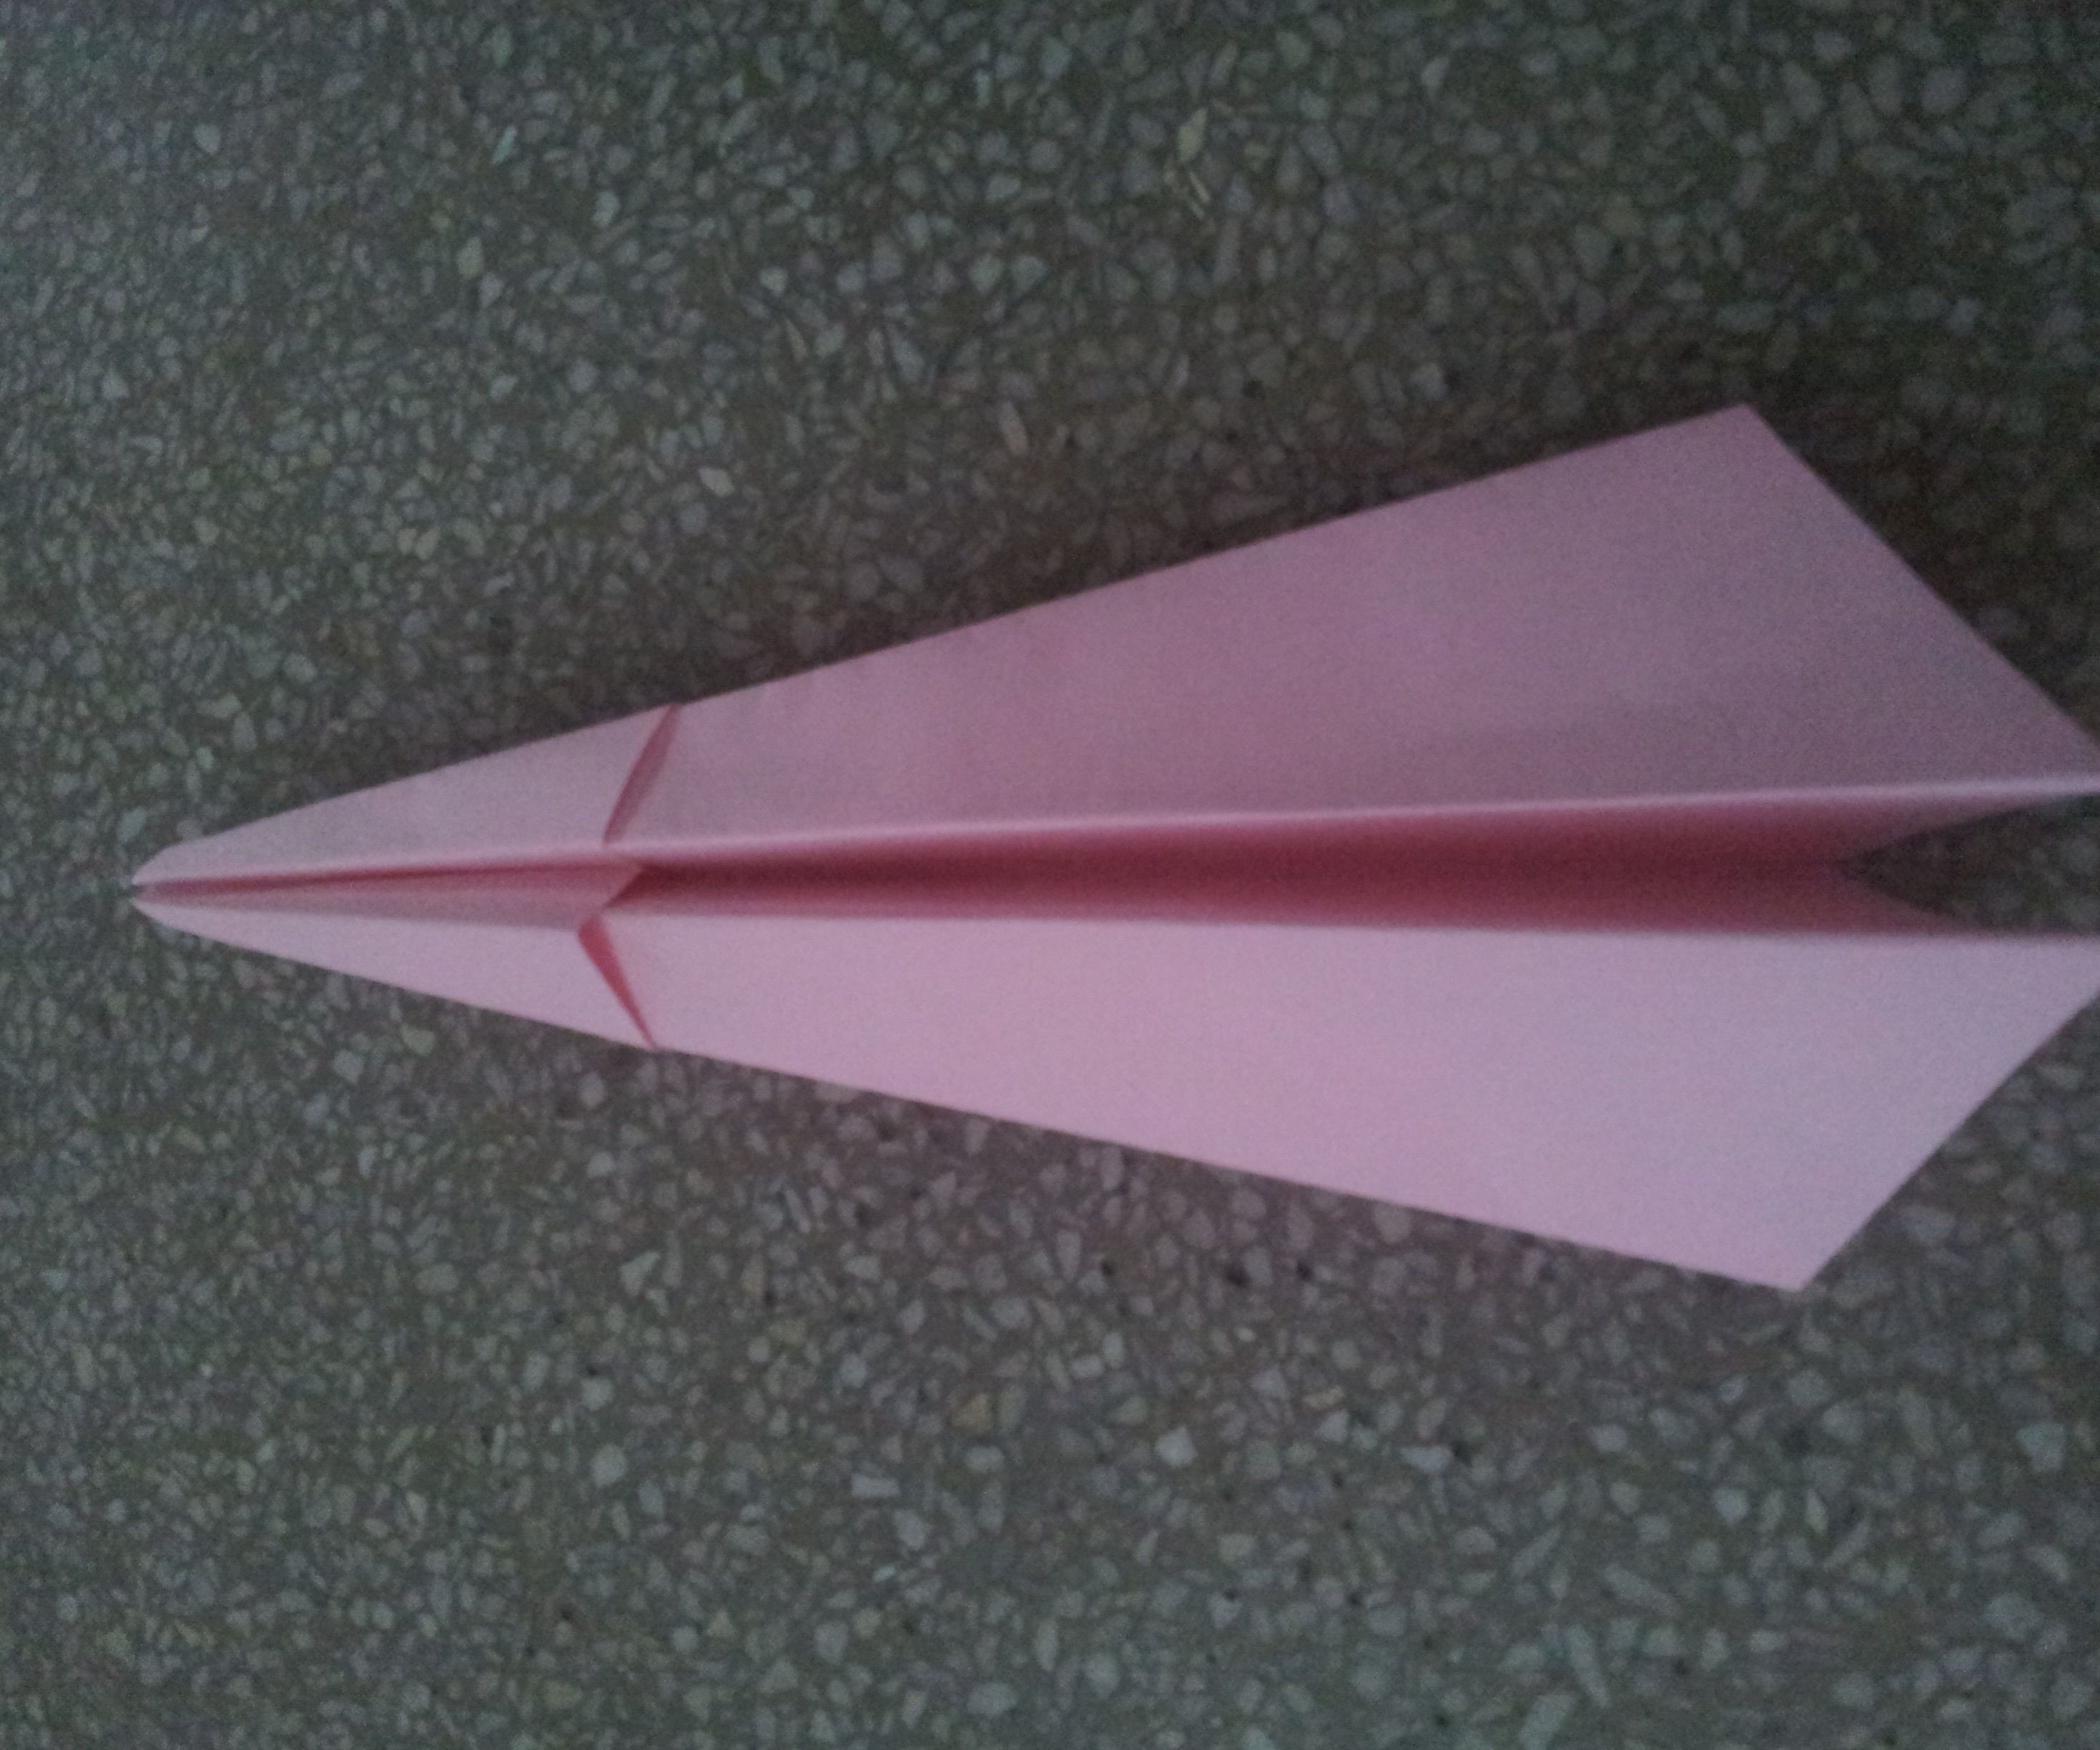 PAPER PLANES - How to make a paper airplane that Flies